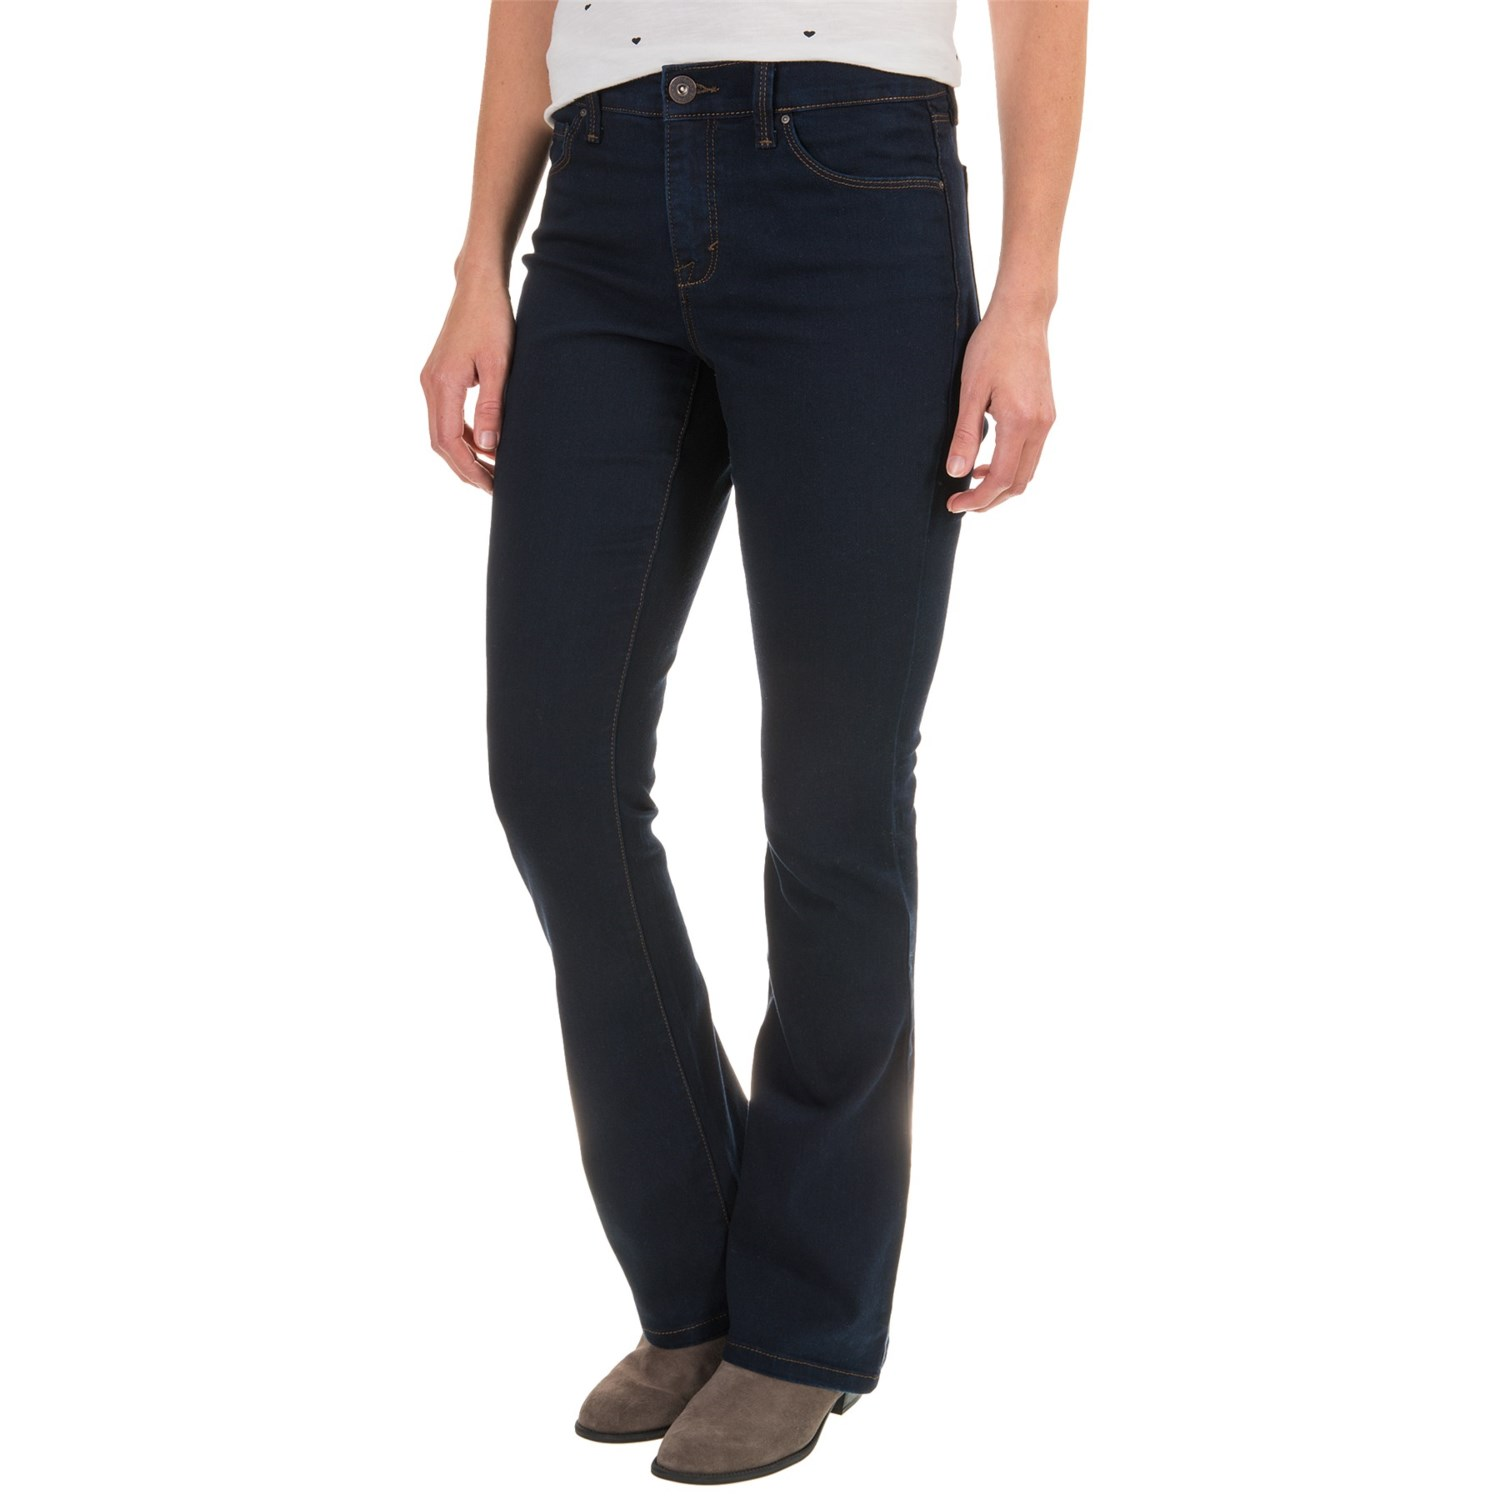 Shop for womens stretch bootcut jeans online at Target. Free shipping on purchases over $35 and save 5% every day with your Target REDcard.